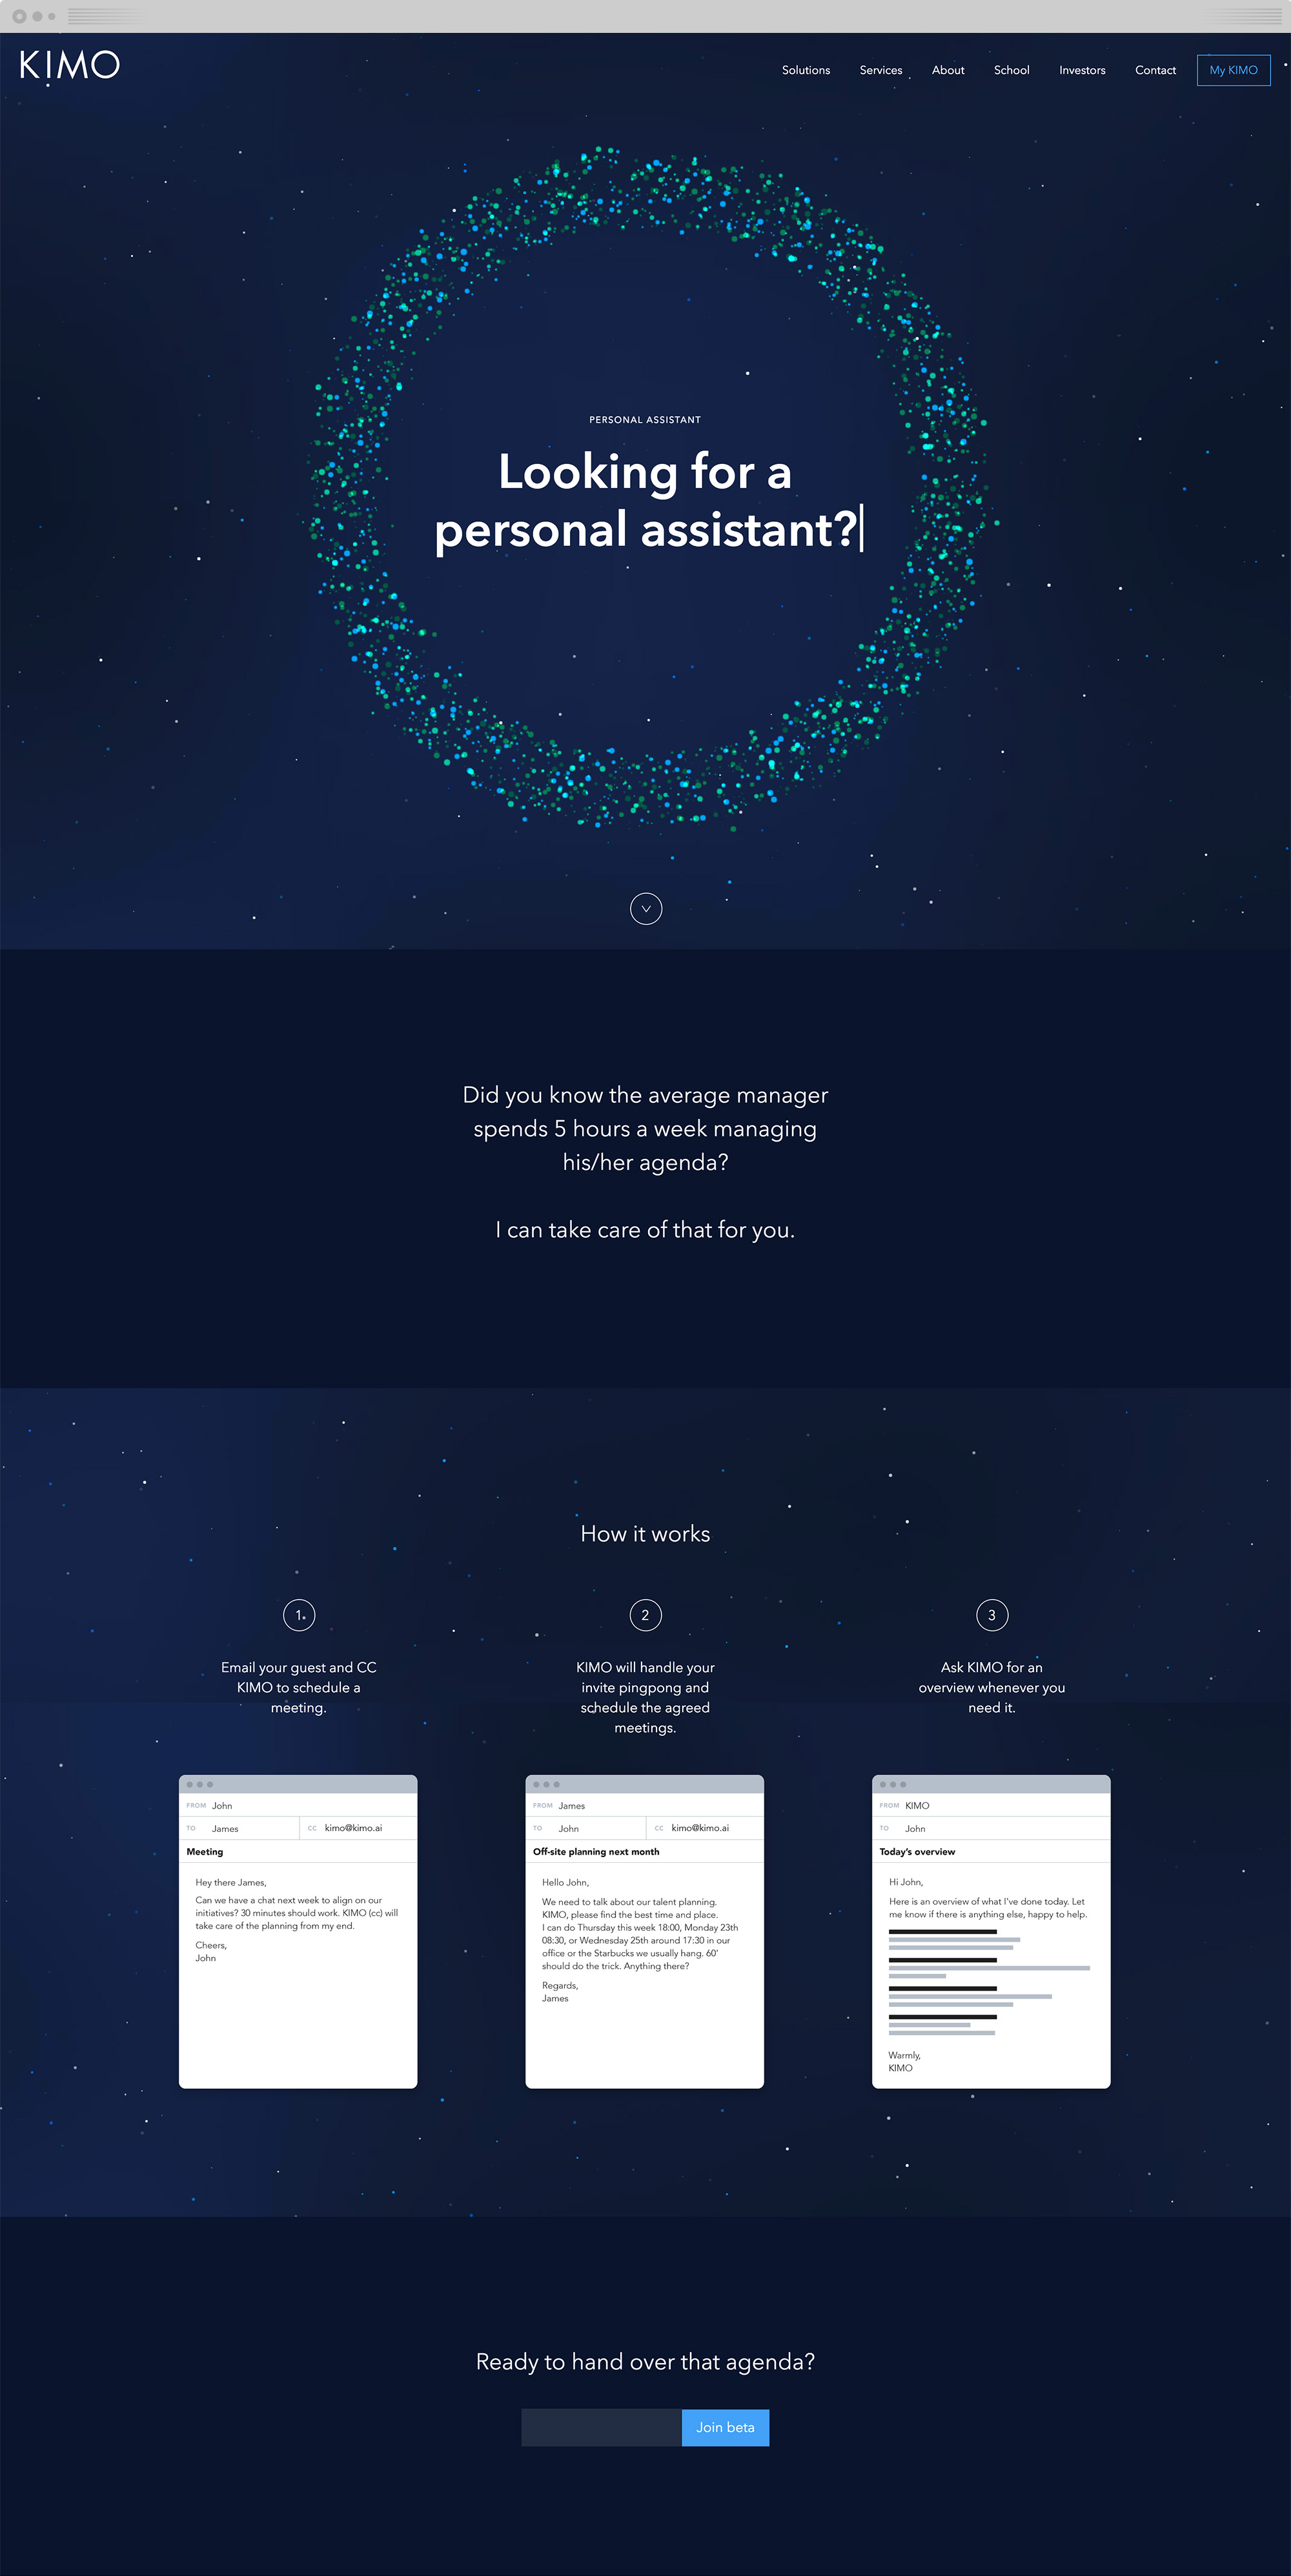 The landing page for Kimo Personal Assistant